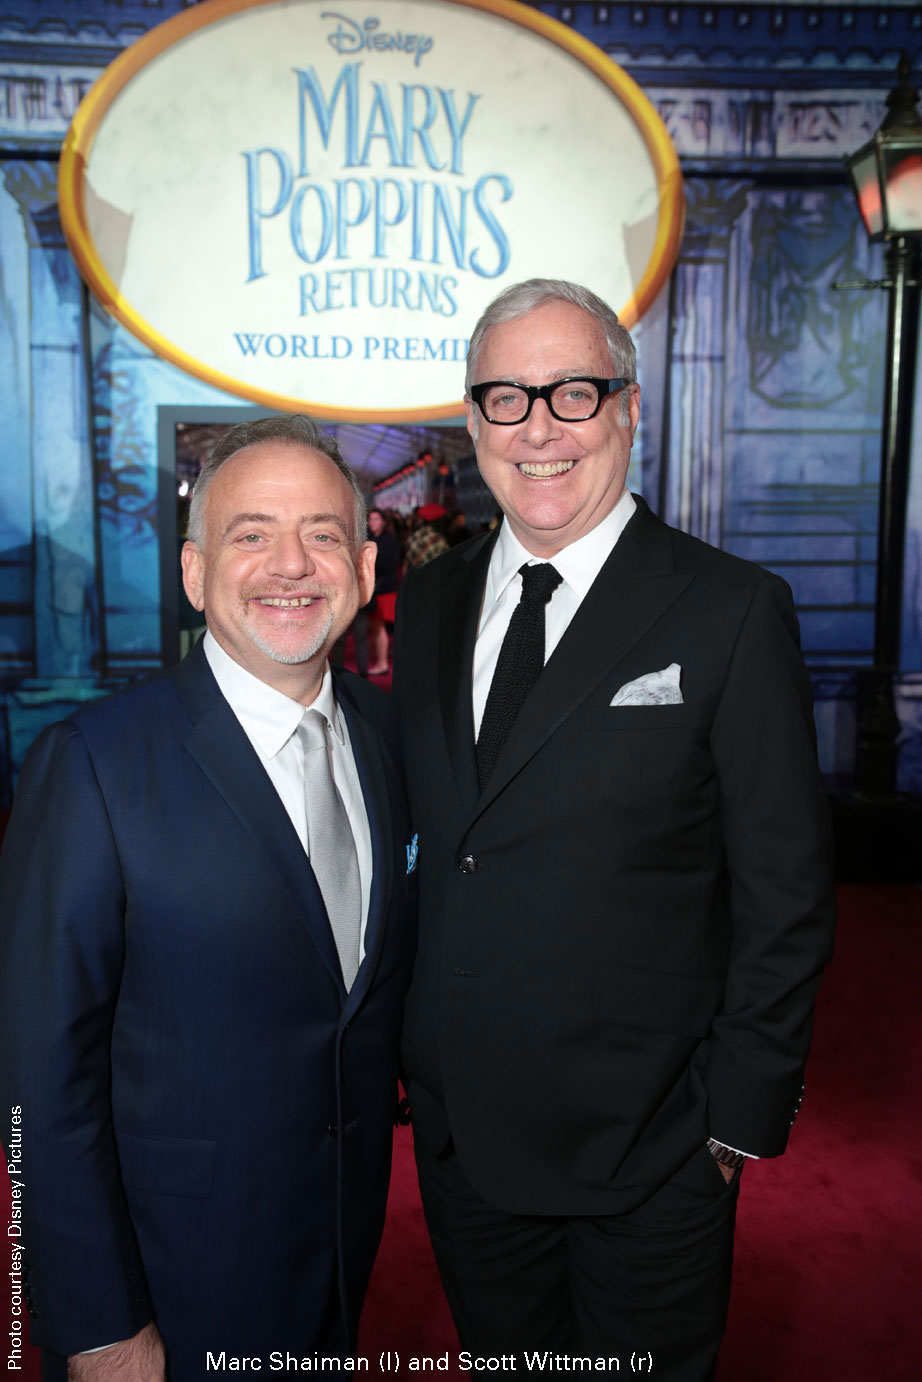 Marc Shaiman (l) and Scott Wittman (r) at Mary Poppins Returns premiere